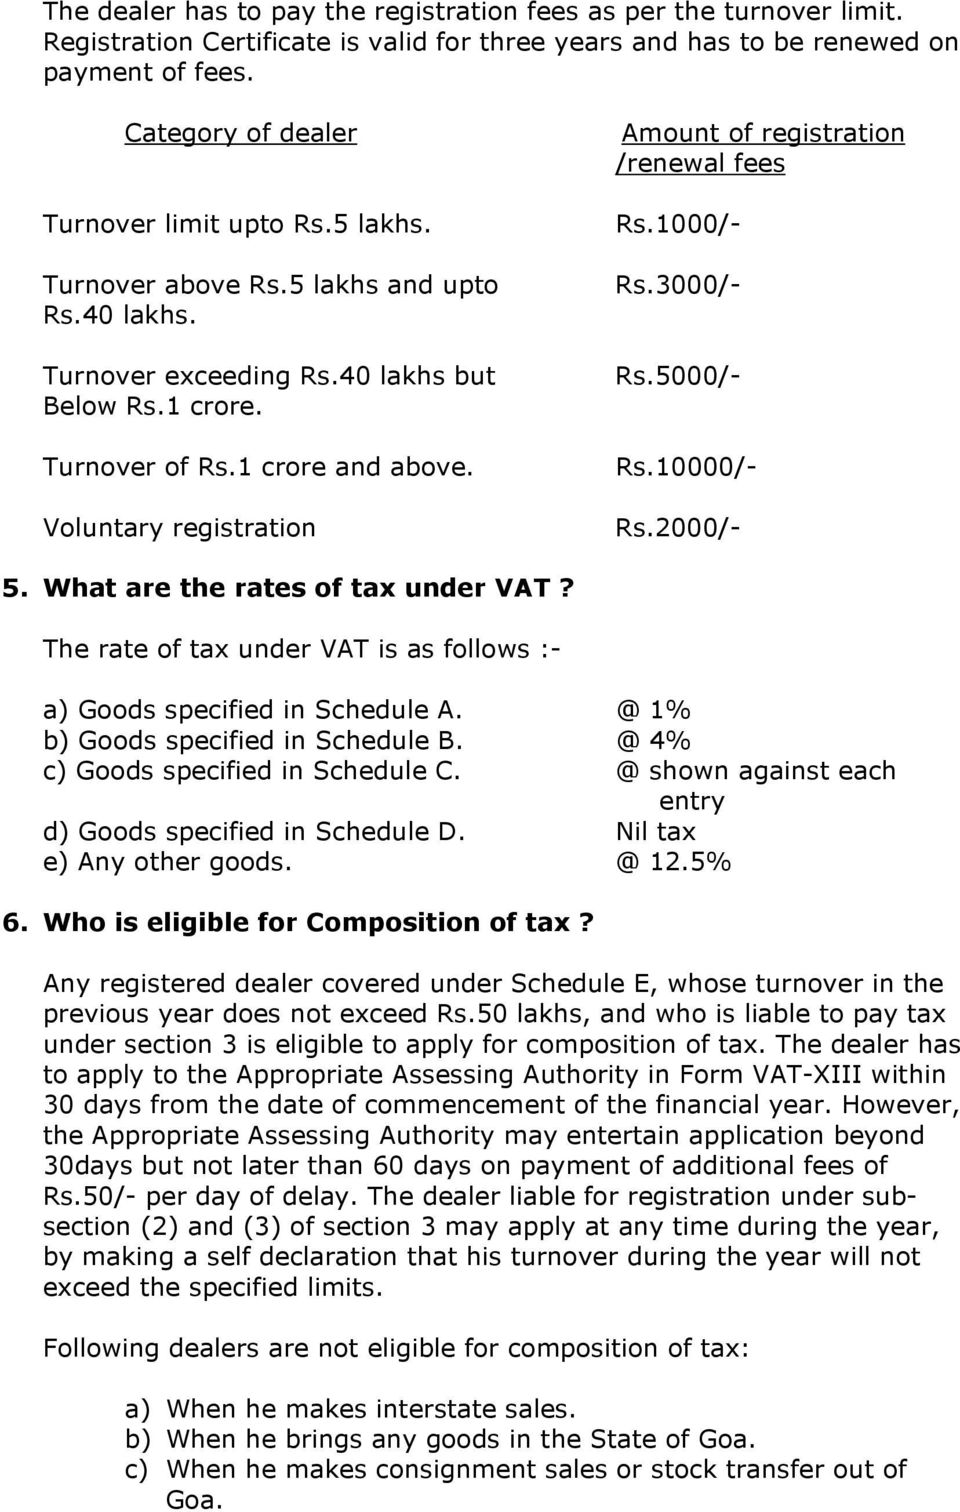 Voluntary registration Amount of registration /renewal fees Rs.1000/- Rs.3000/- Rs.5000/- Rs.10000/- Rs.2000/- 5. What are the rates of tax under VAT?